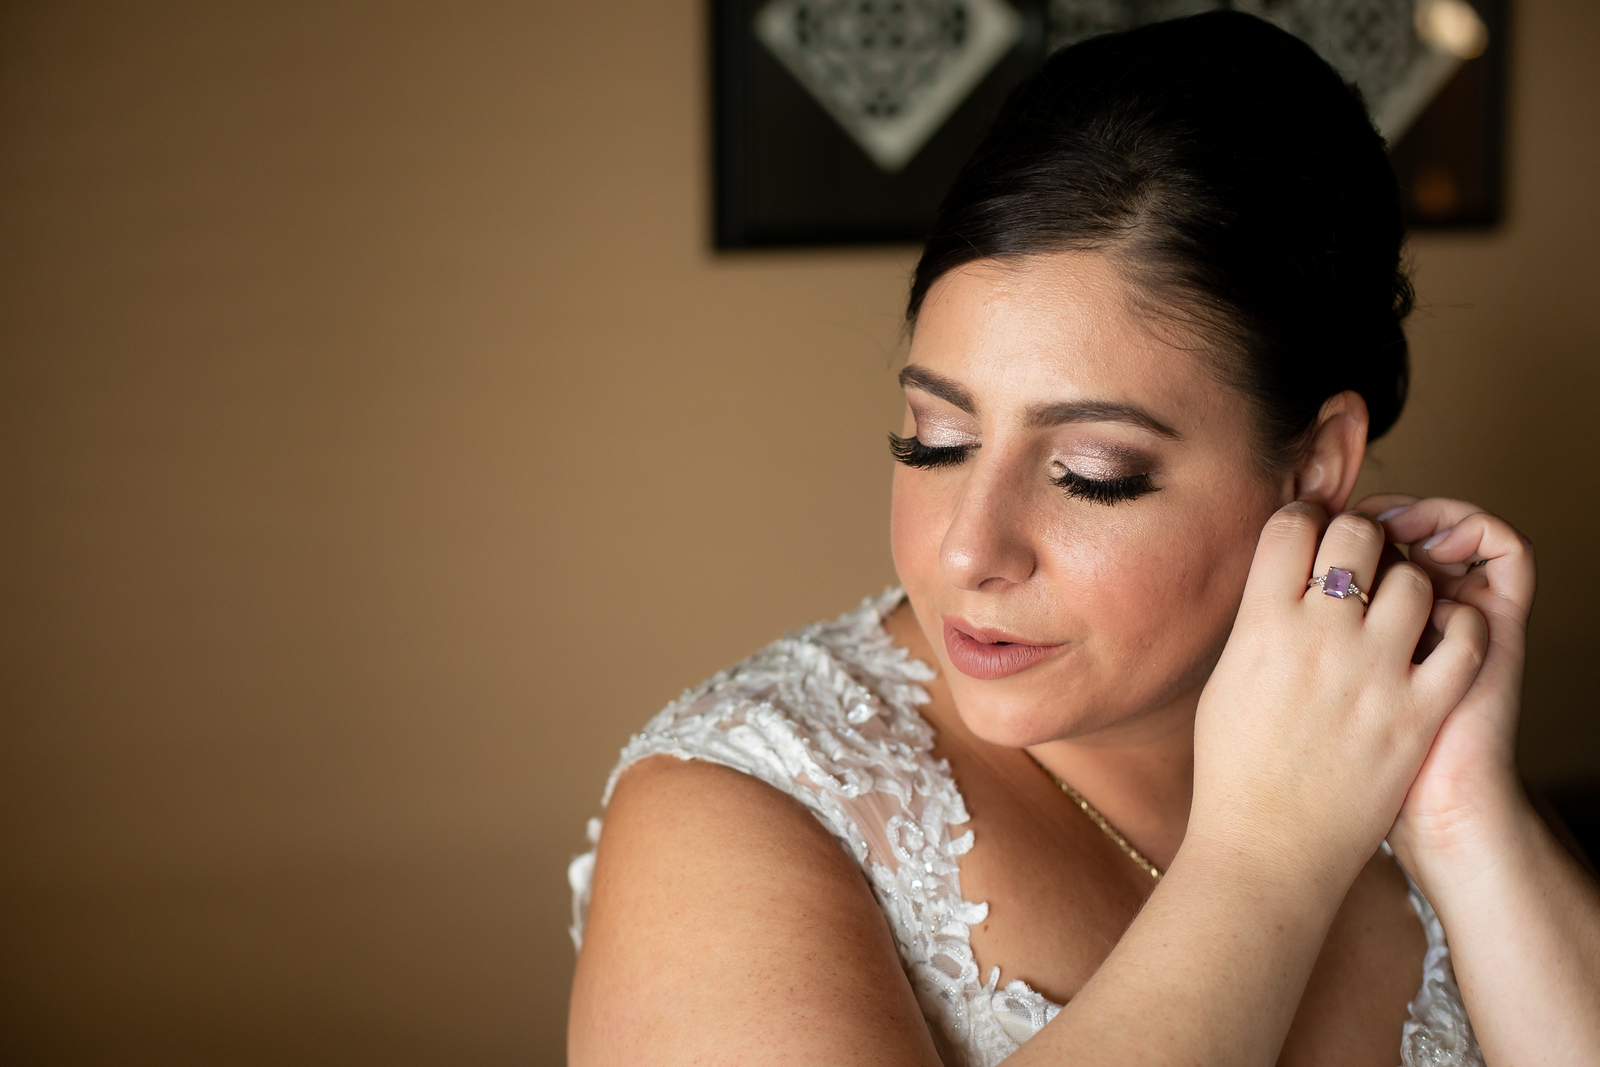 bride in a white lace dress putting her earrings on just before her wedding